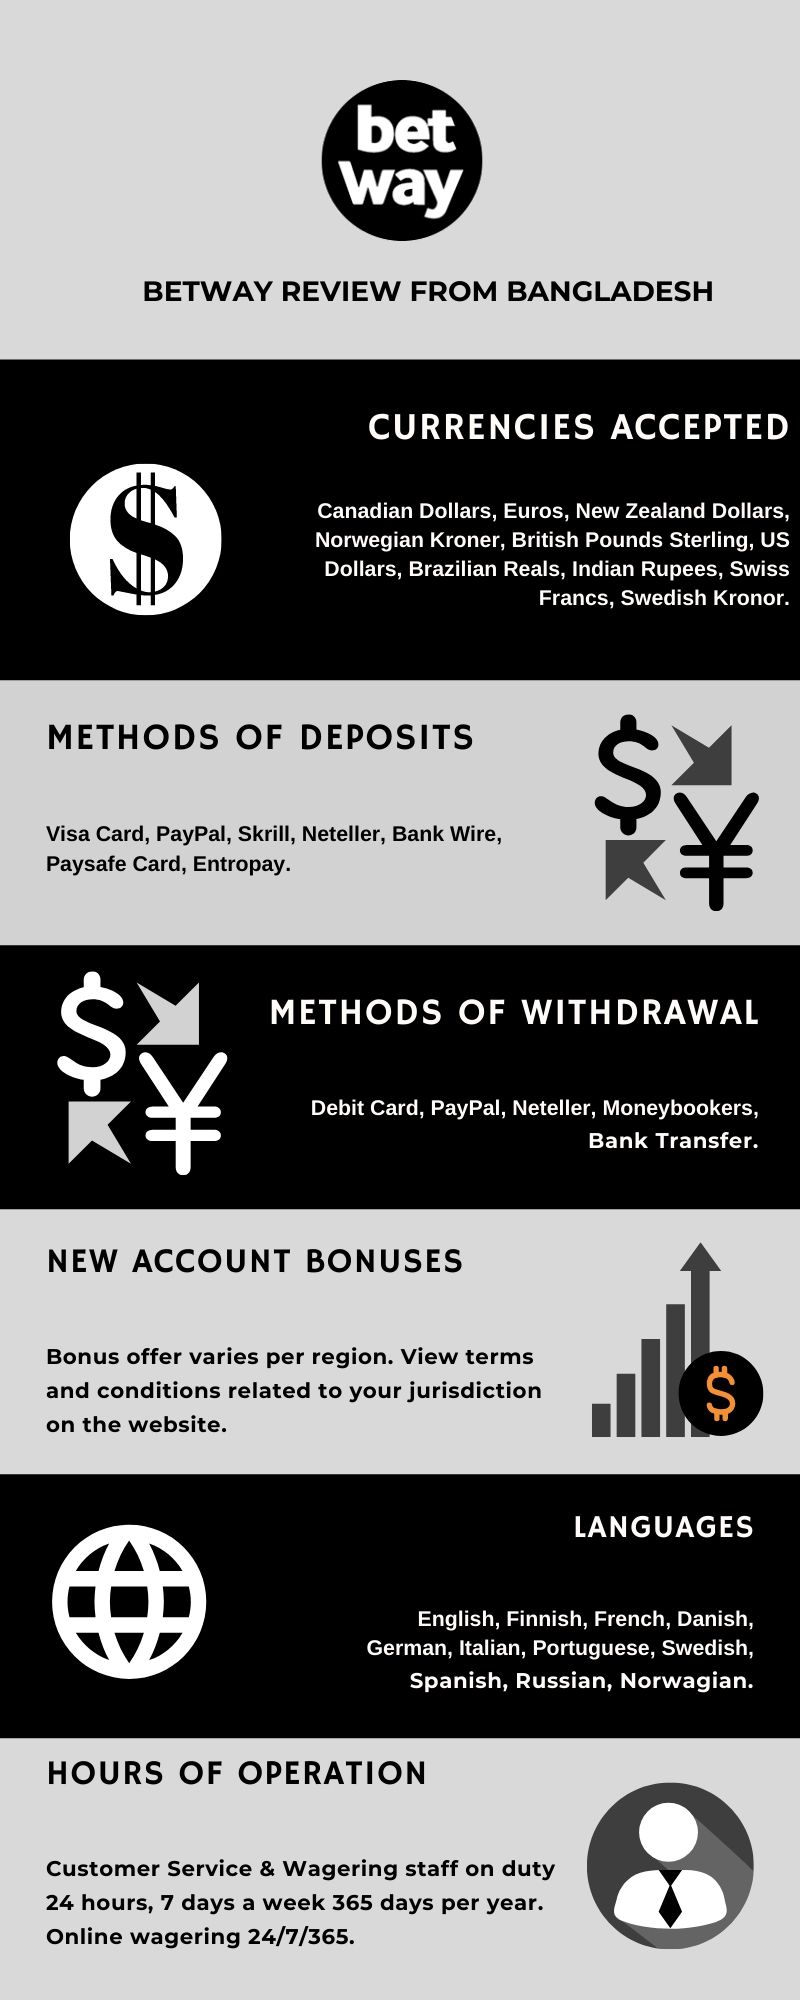 Betway Review from Bangladesh Infographic